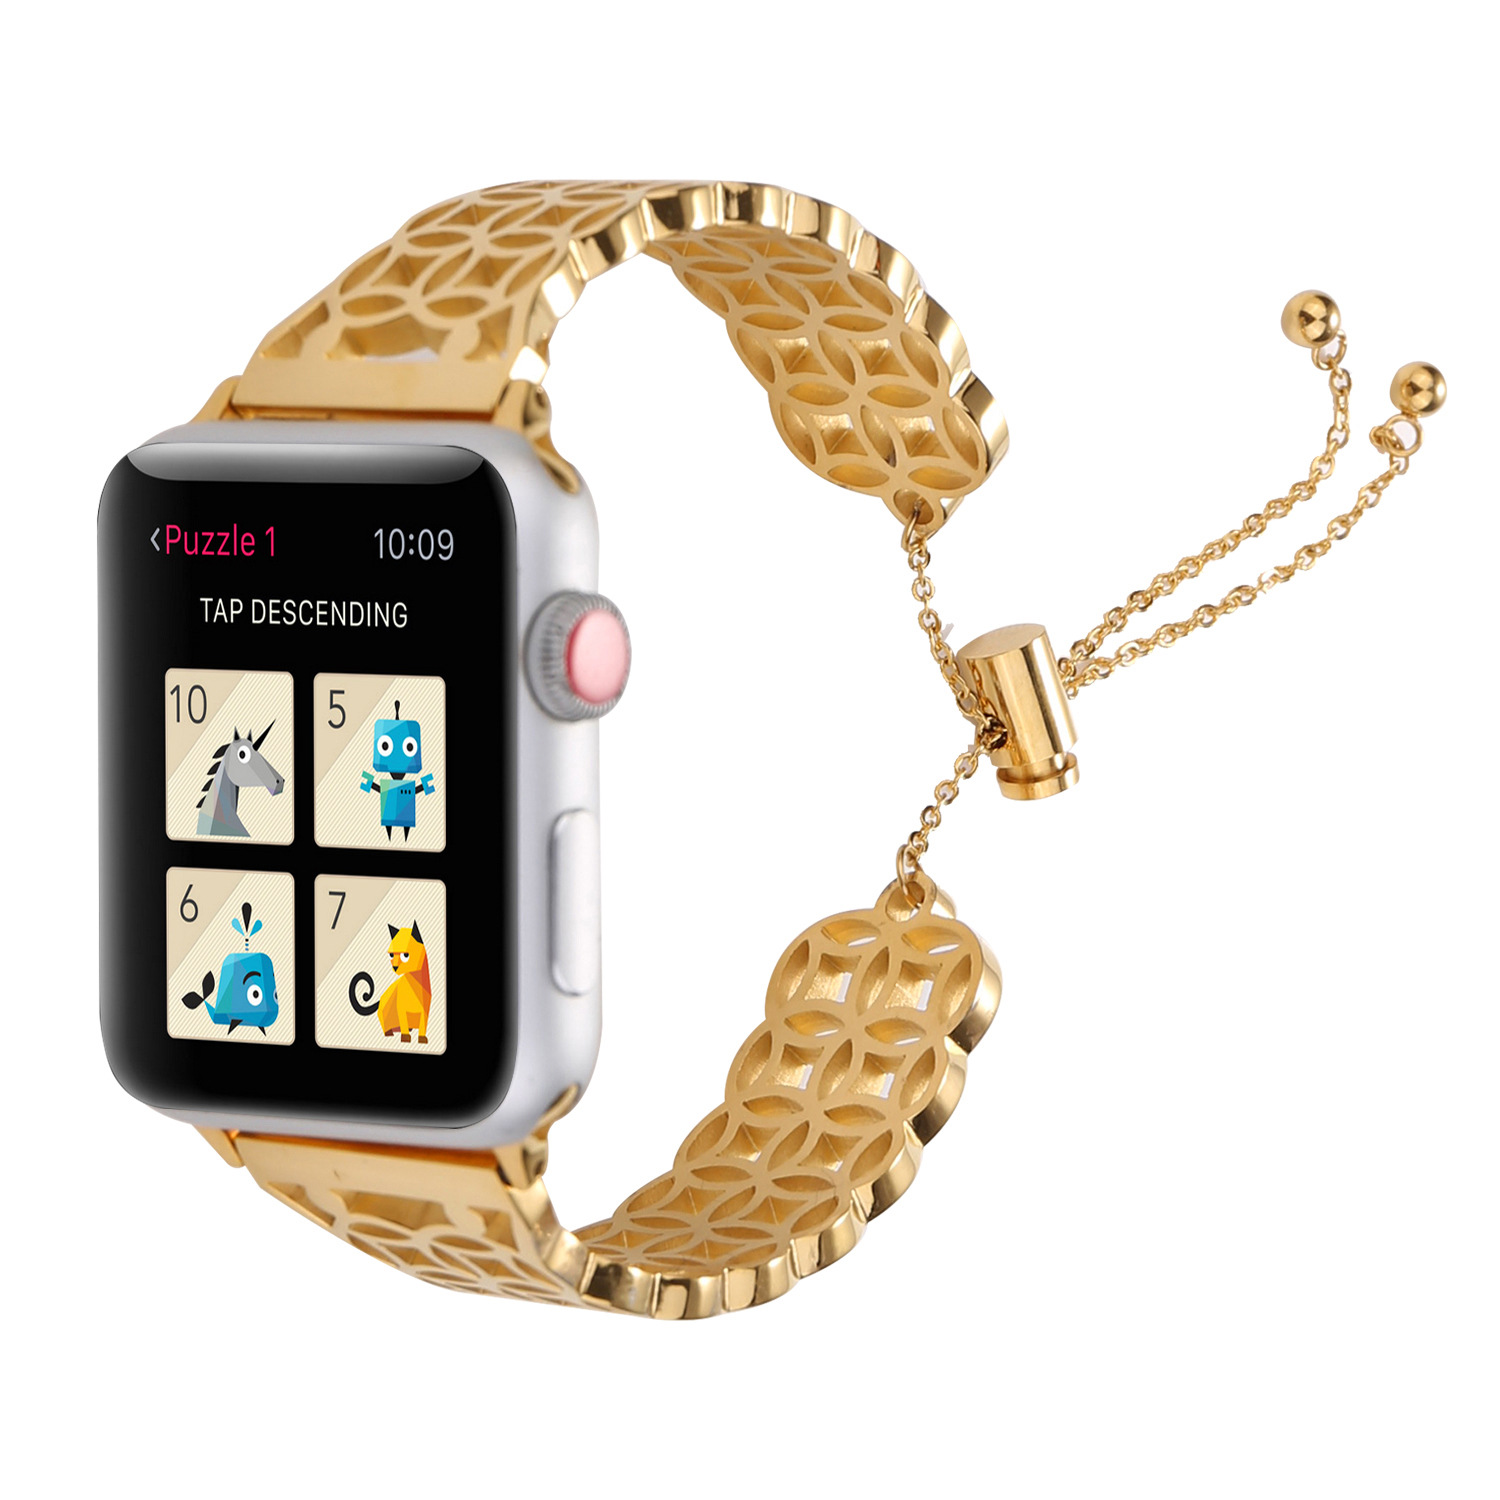 Applicable APPLE Watch Bracelet Watch Strap Apple Watch Strap Stainless Steel On Ancient Coins Graphics Watch Strap